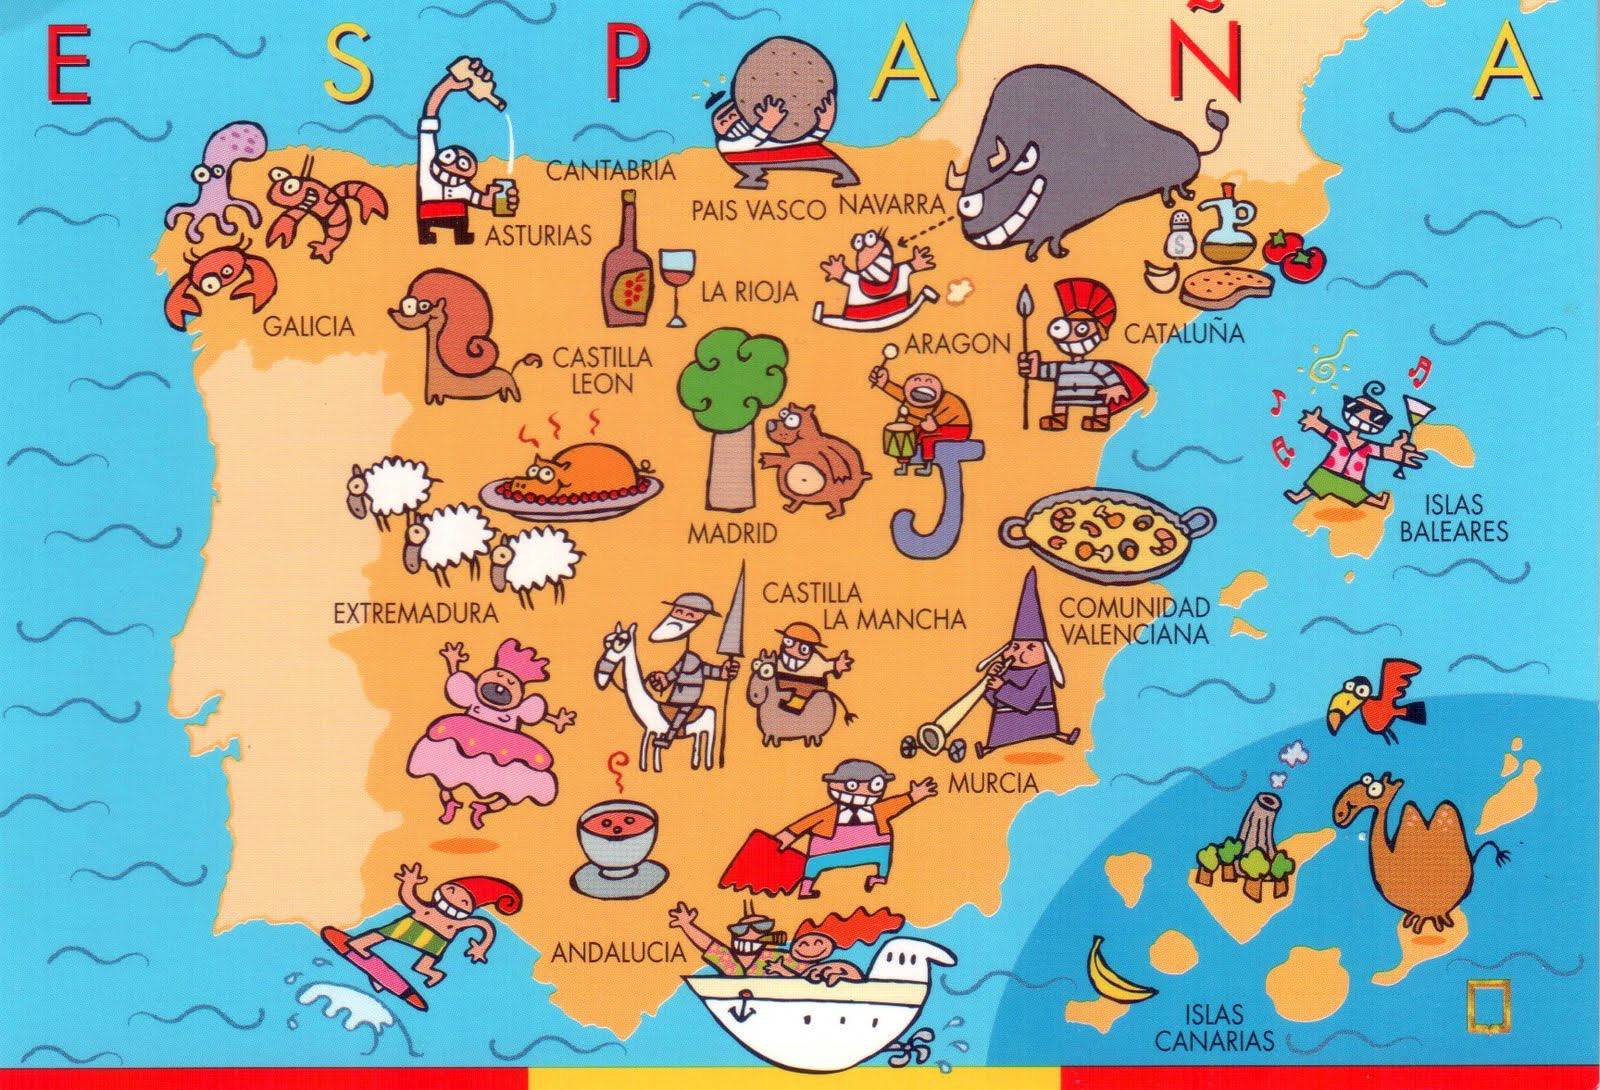 Large fun map of Spain  Spain  Europe  Mapsland  Maps of the World